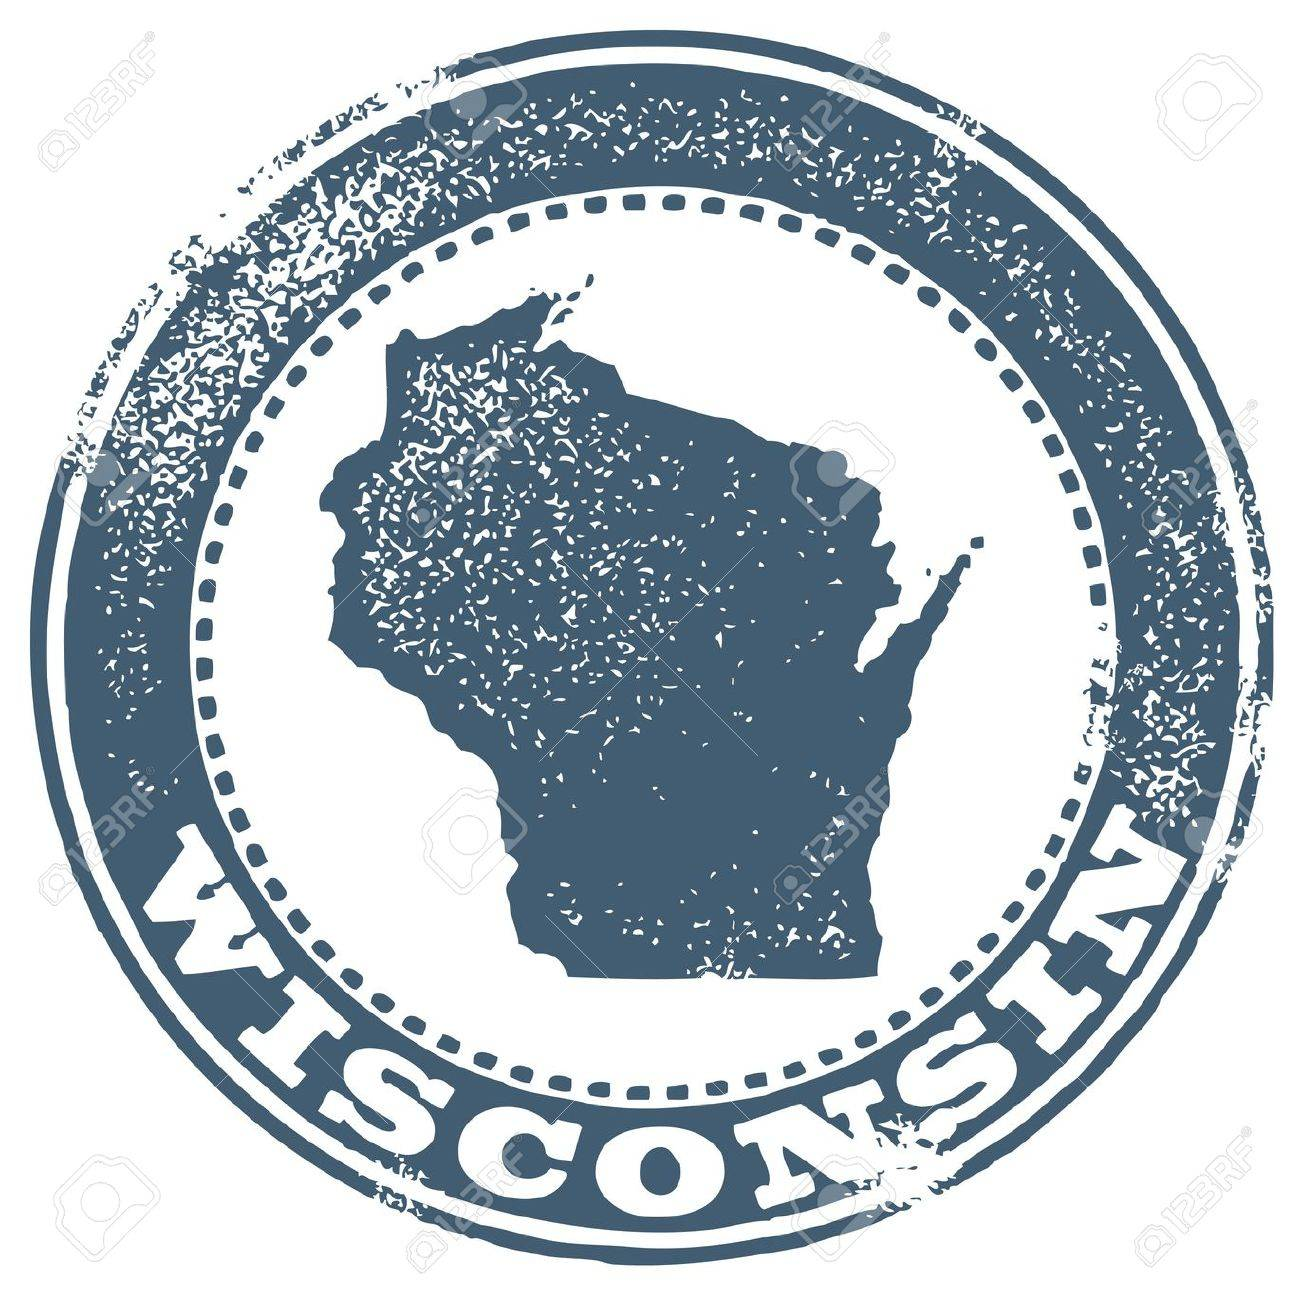 Vintage Wisconsin State StampSeal Royalty Free Cliparts Vectors - Map of america wisconsin